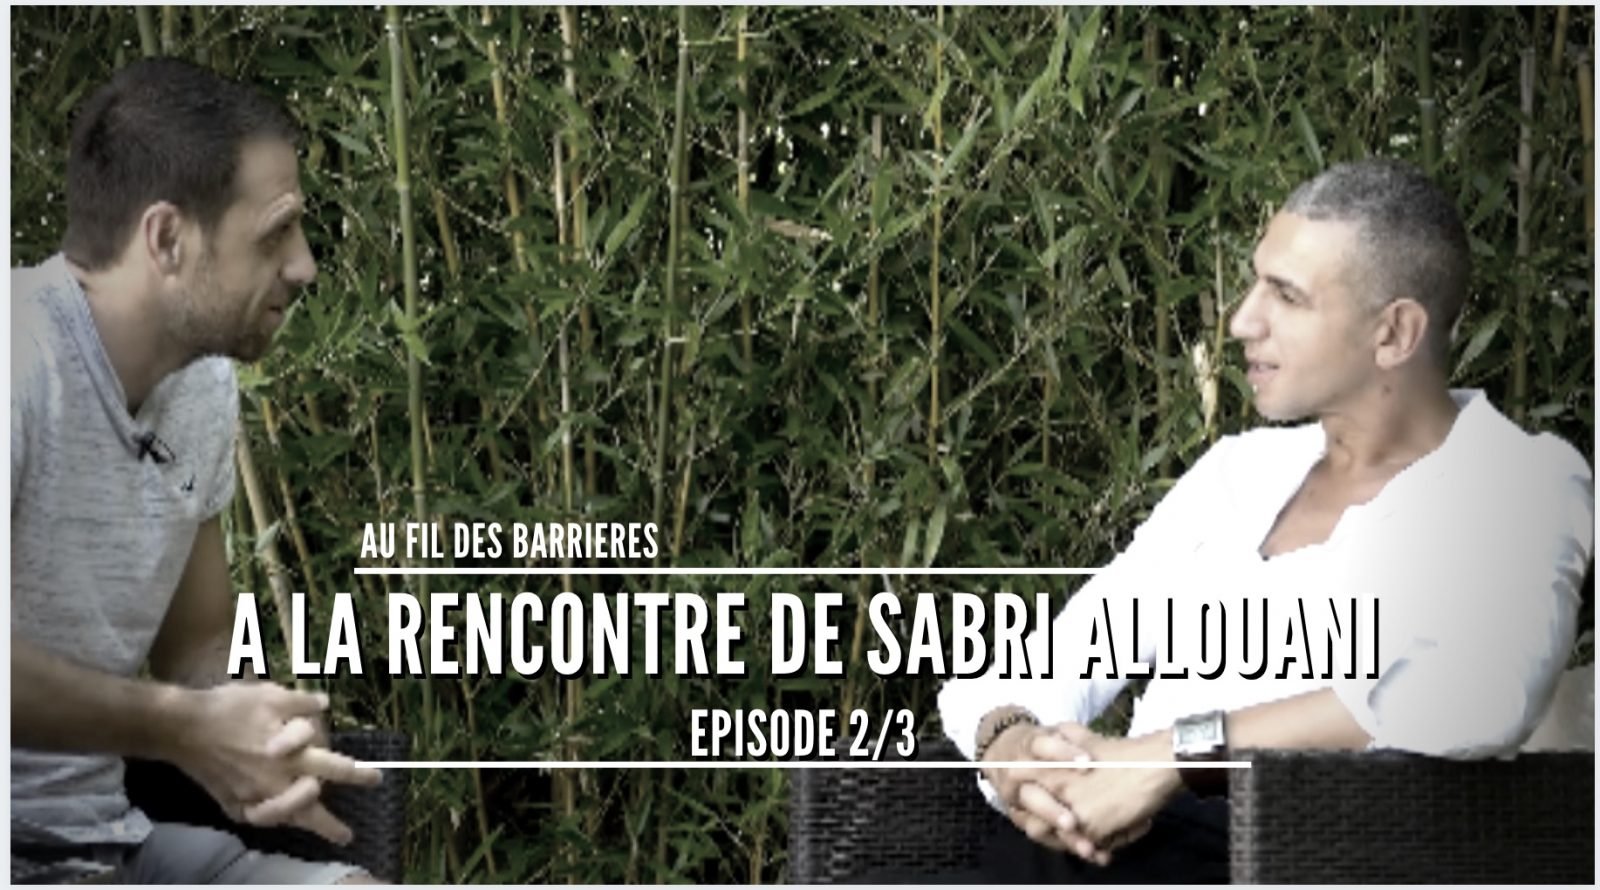 VIDEO // A la rencontre de Sabri Allouani – Episode 2/3